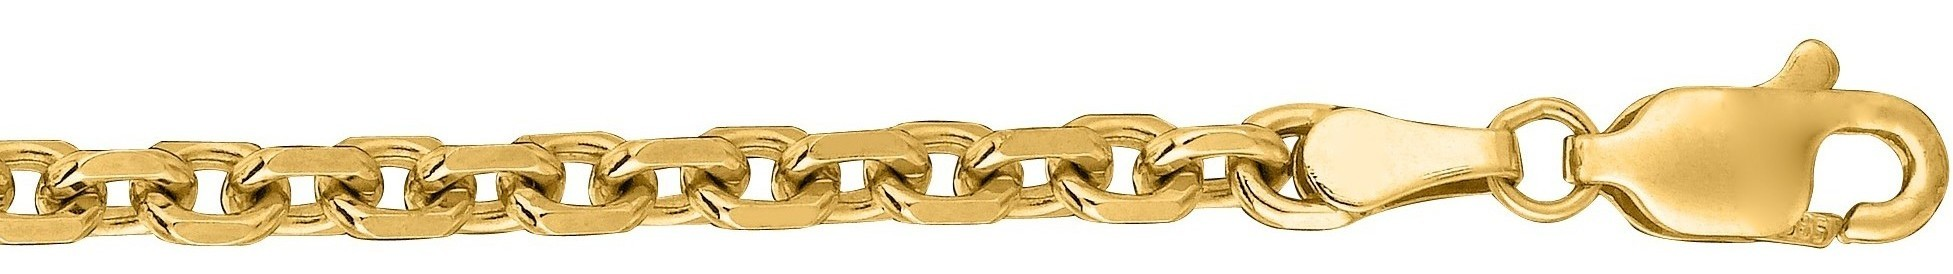 "18"" 14K Yellow Gold 4.0mm (1/6"") Polished Diamond Cut Cable Link Chain w/ Lobster Clasp"